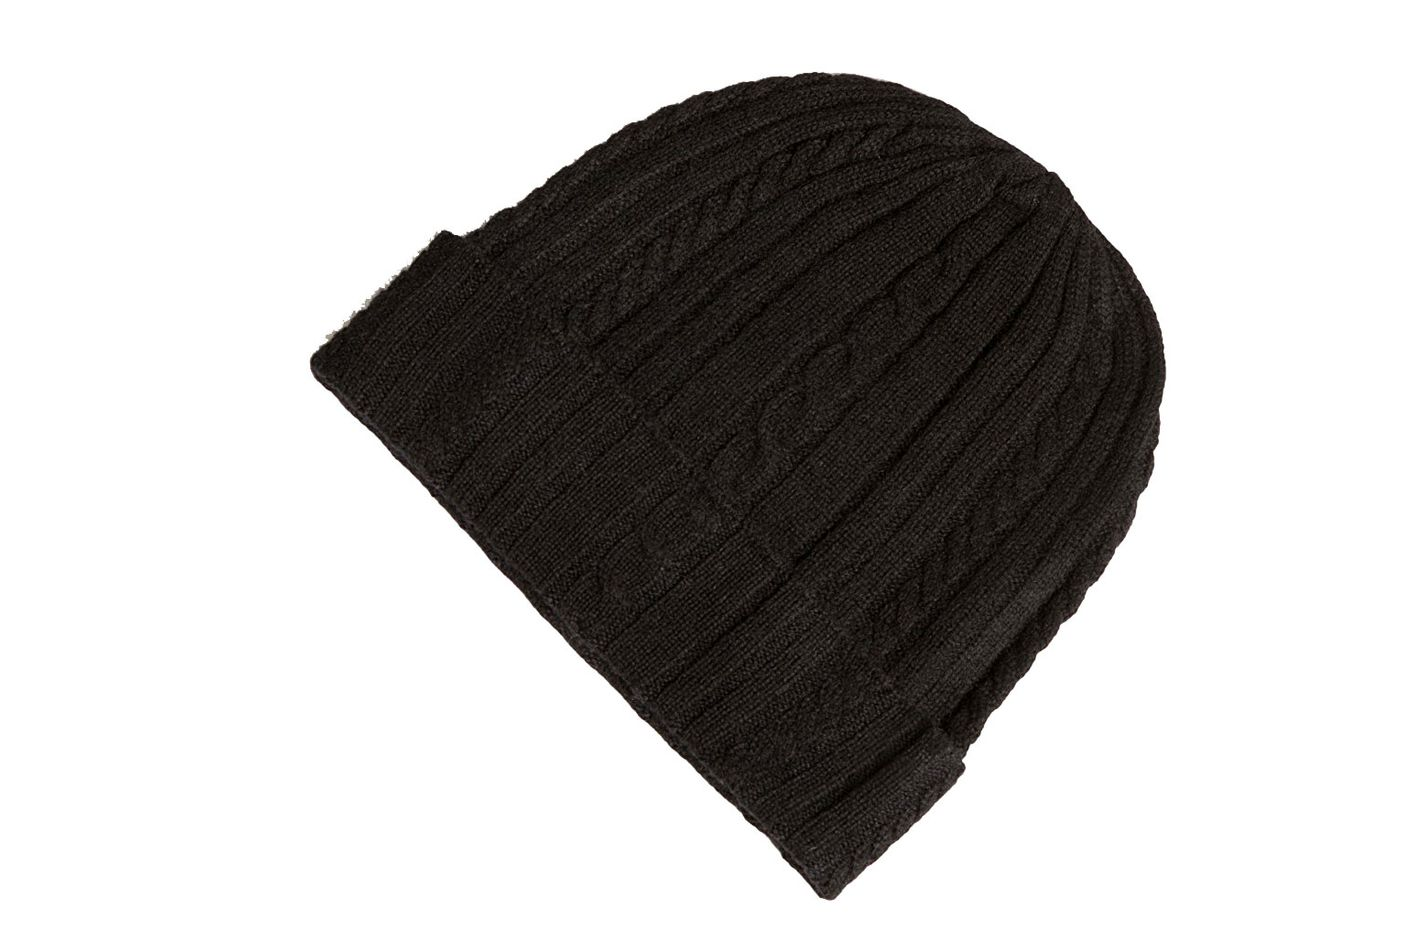 Fishers Finery 100% Pure Cashmere Cable Knit Hat